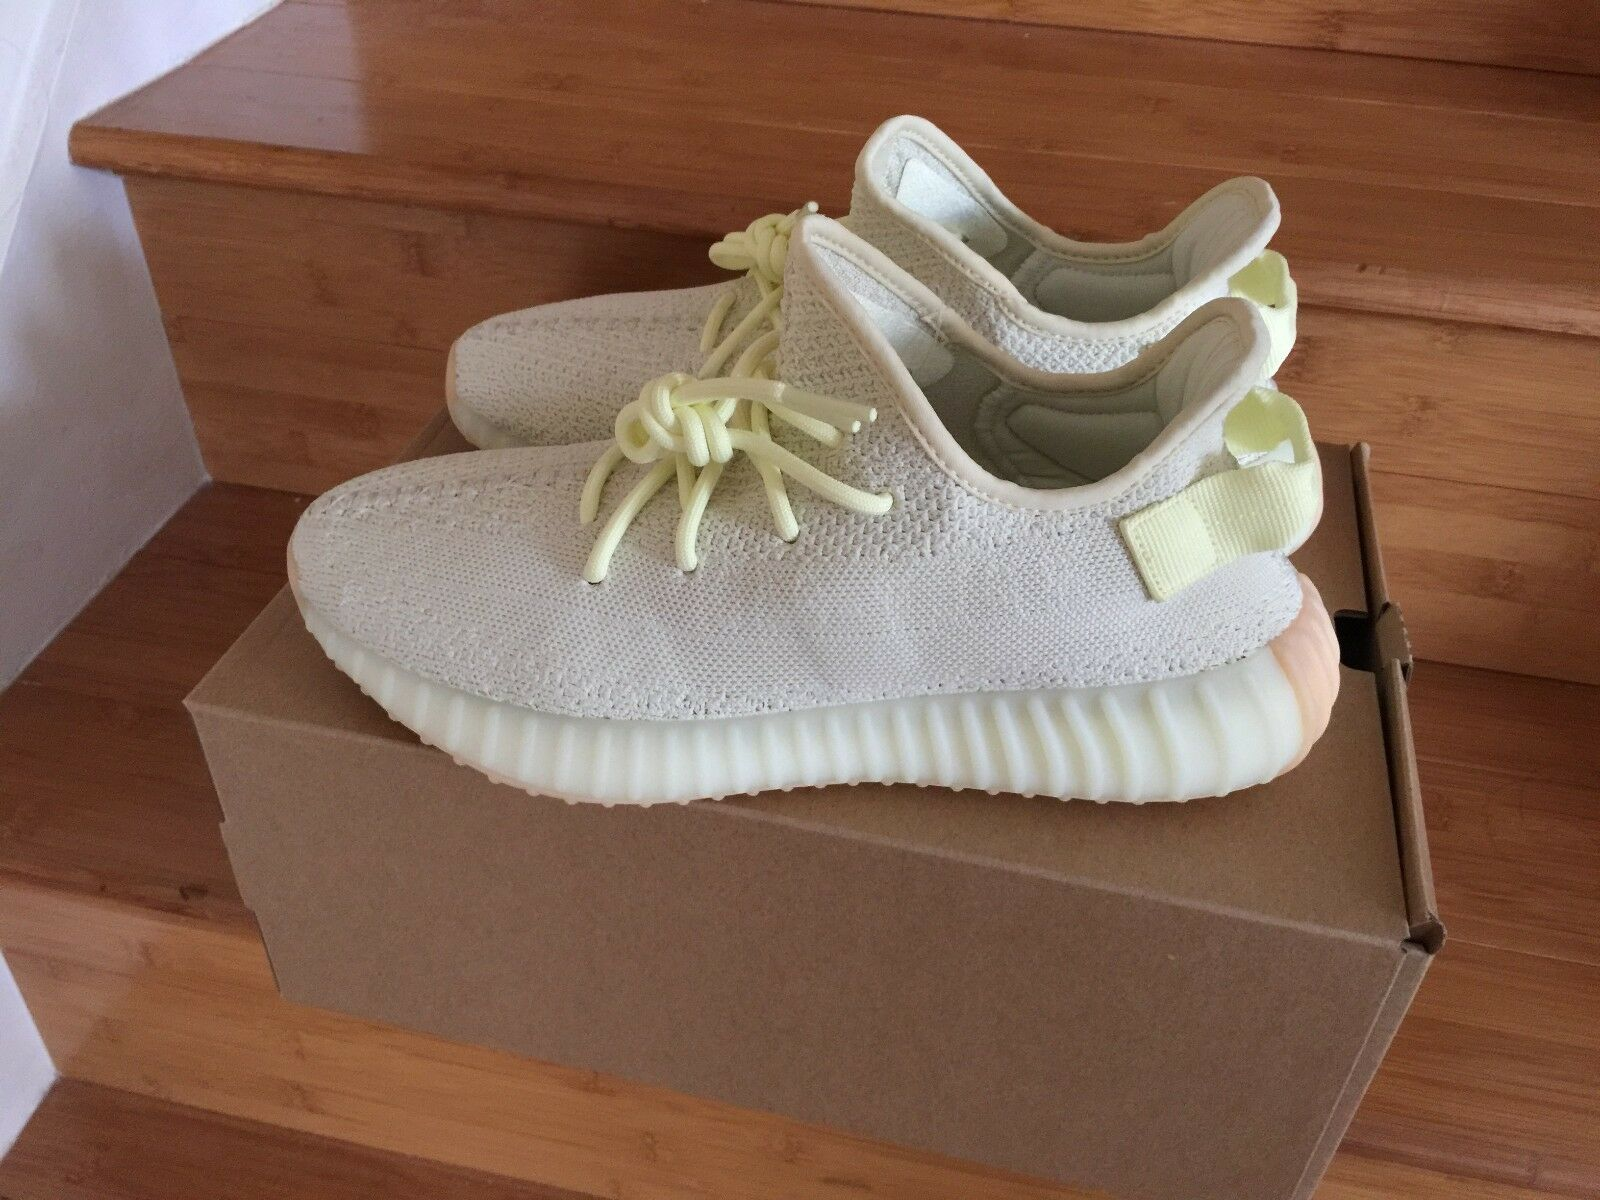 Adidas Yeezy Boost 350 V2 BUTTERKanye West 100% AUTHENTIC or money back, sz 9.5